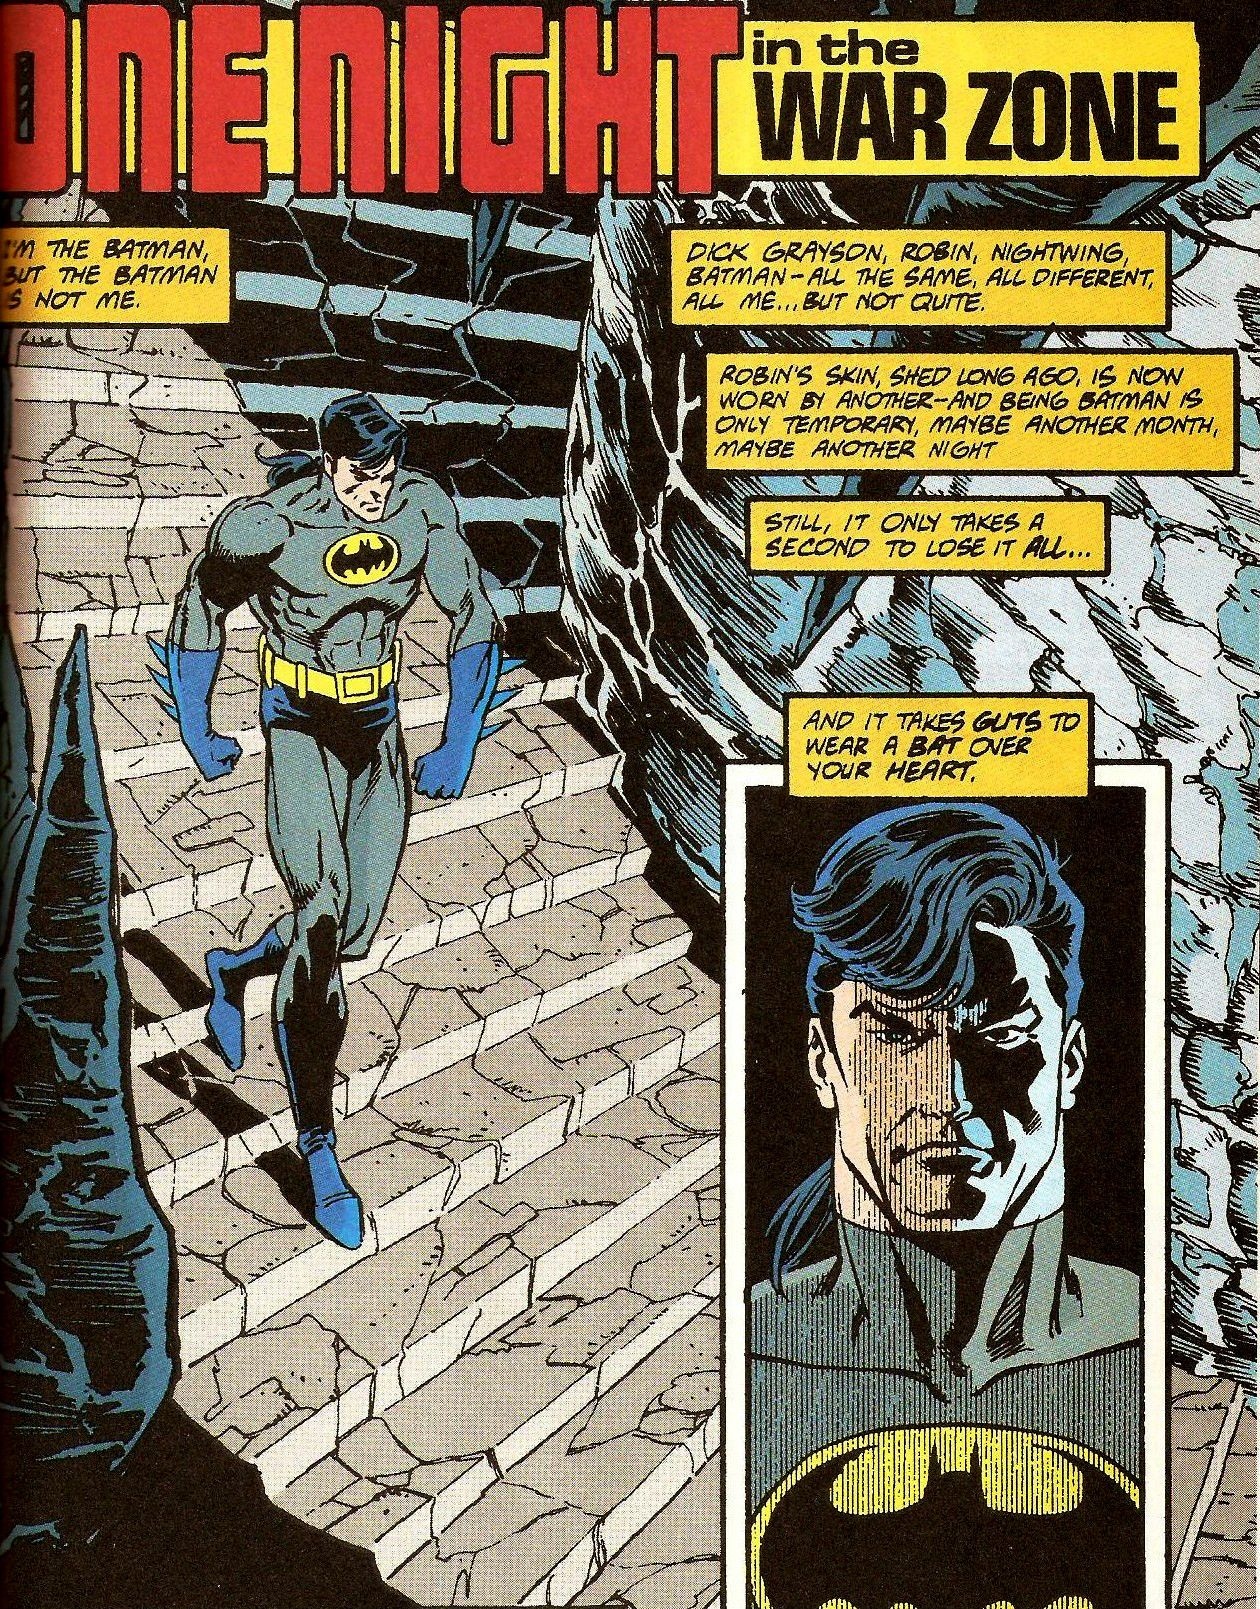 Batman: Prodigal. Dick Grayson